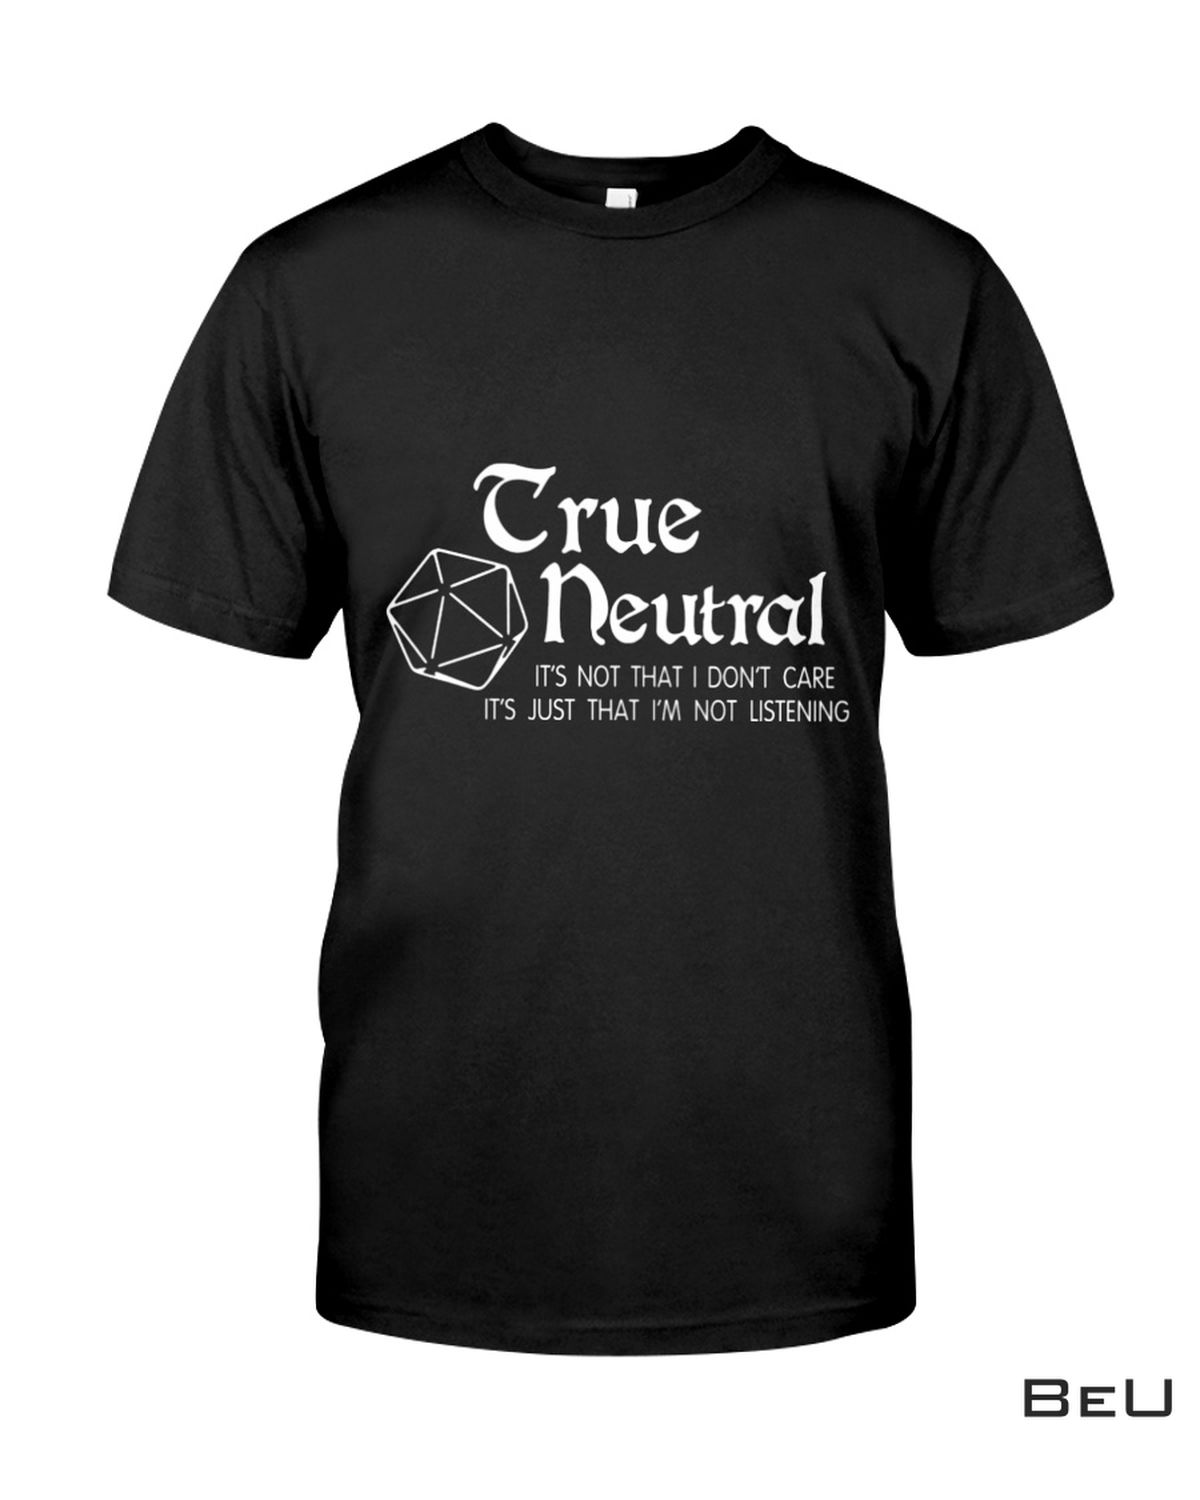 True Neutral It's Not That I Don't Care It's Just That I'm Not Listening Shirt, hoodie, tank top